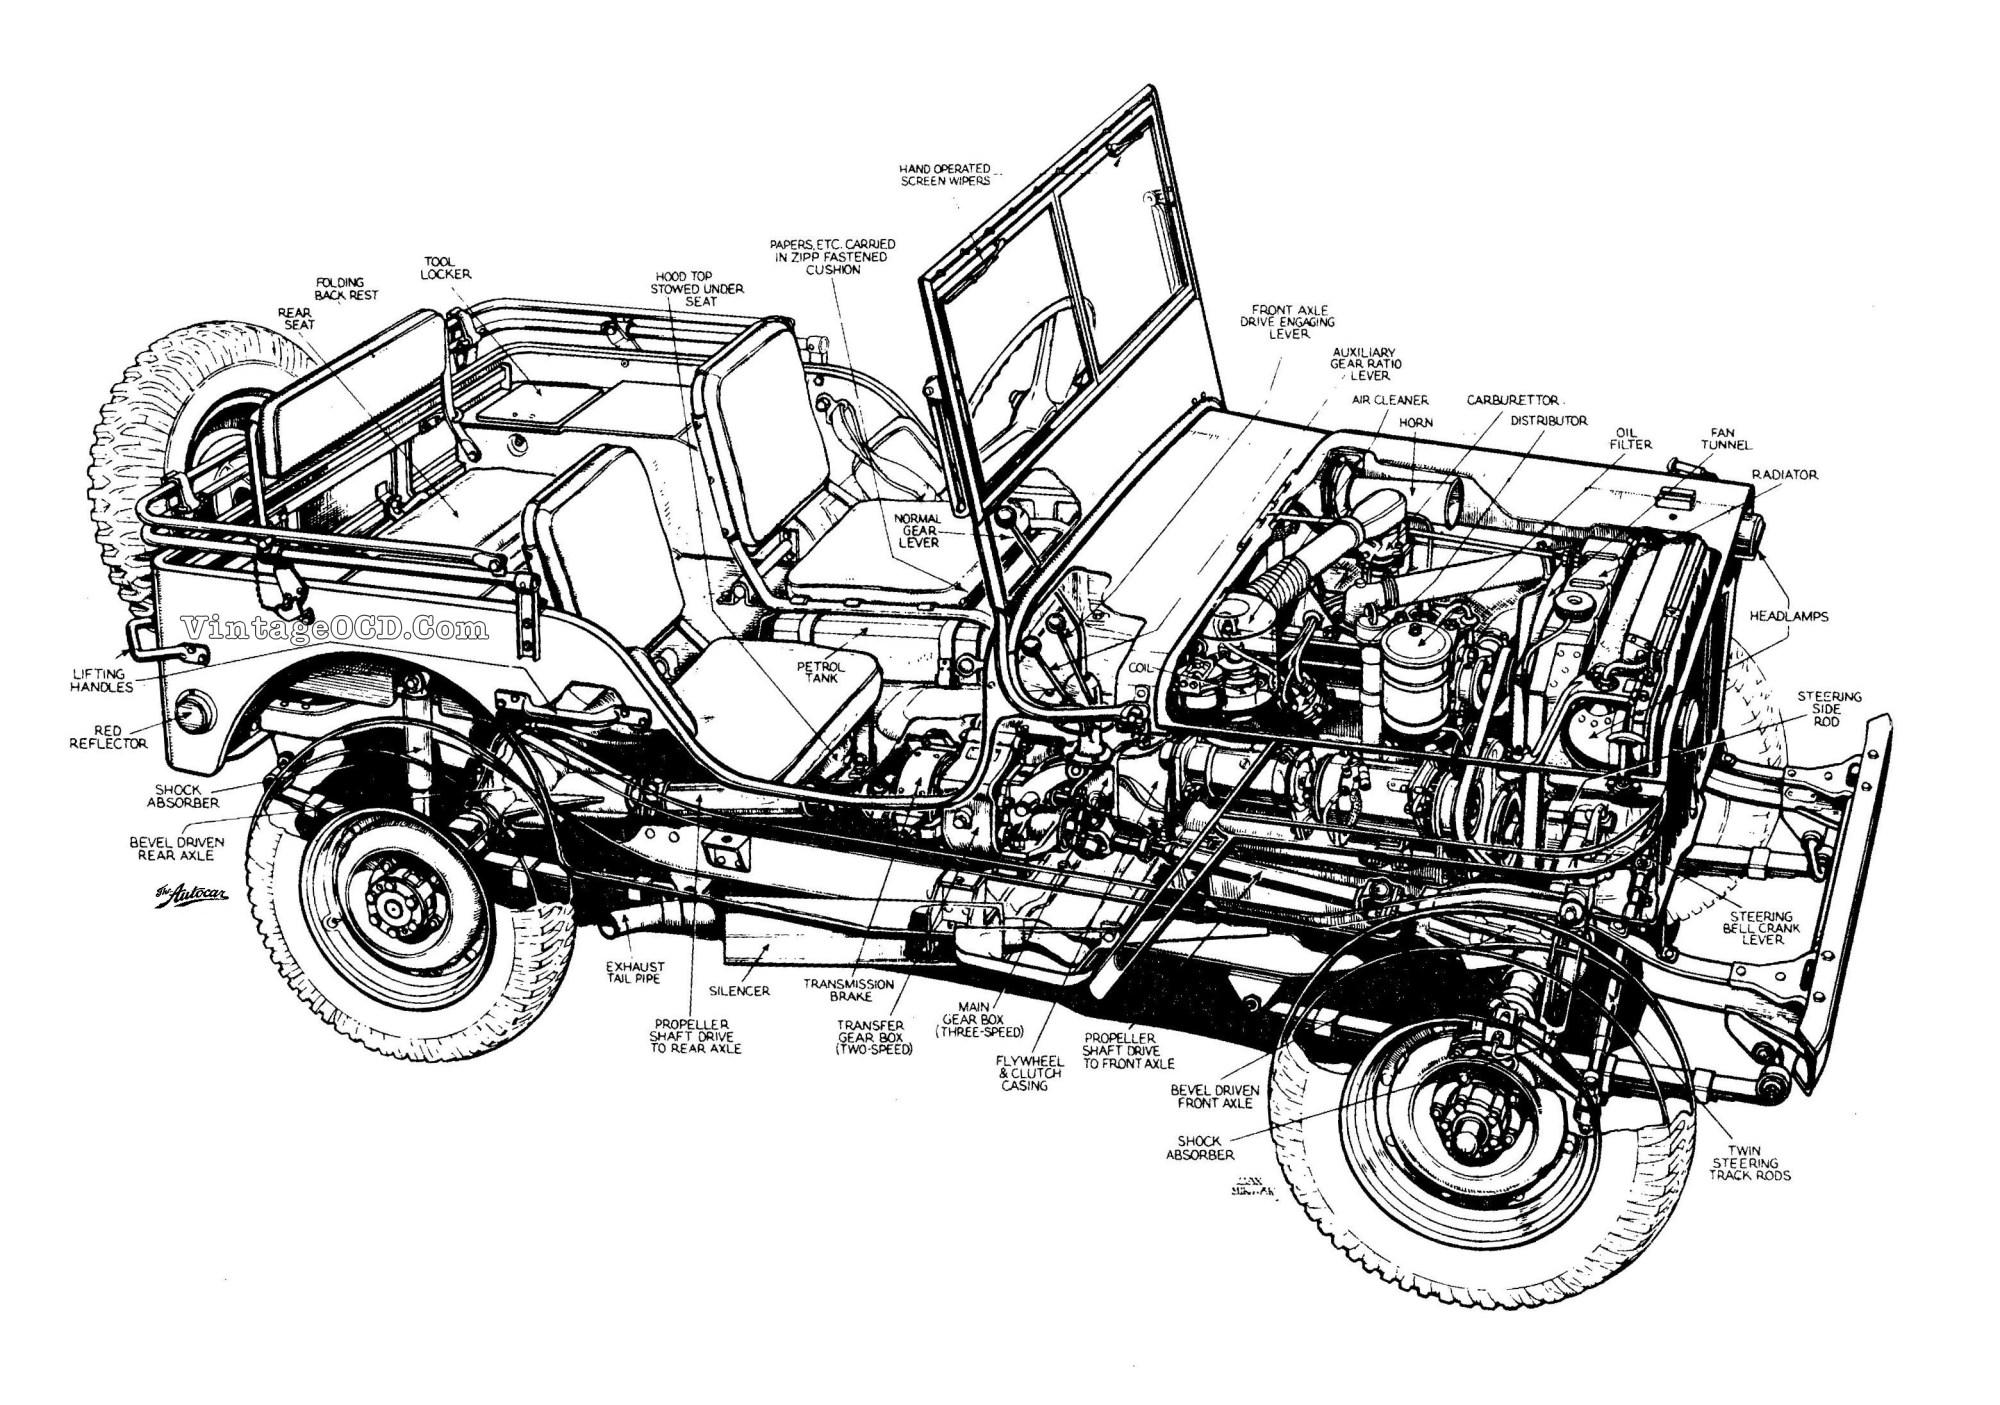 hight resolution of 1964 willys jeep wiring diagram schematic wiring diagrams v8 engine wiring diagram 1952 willys wagon wiring